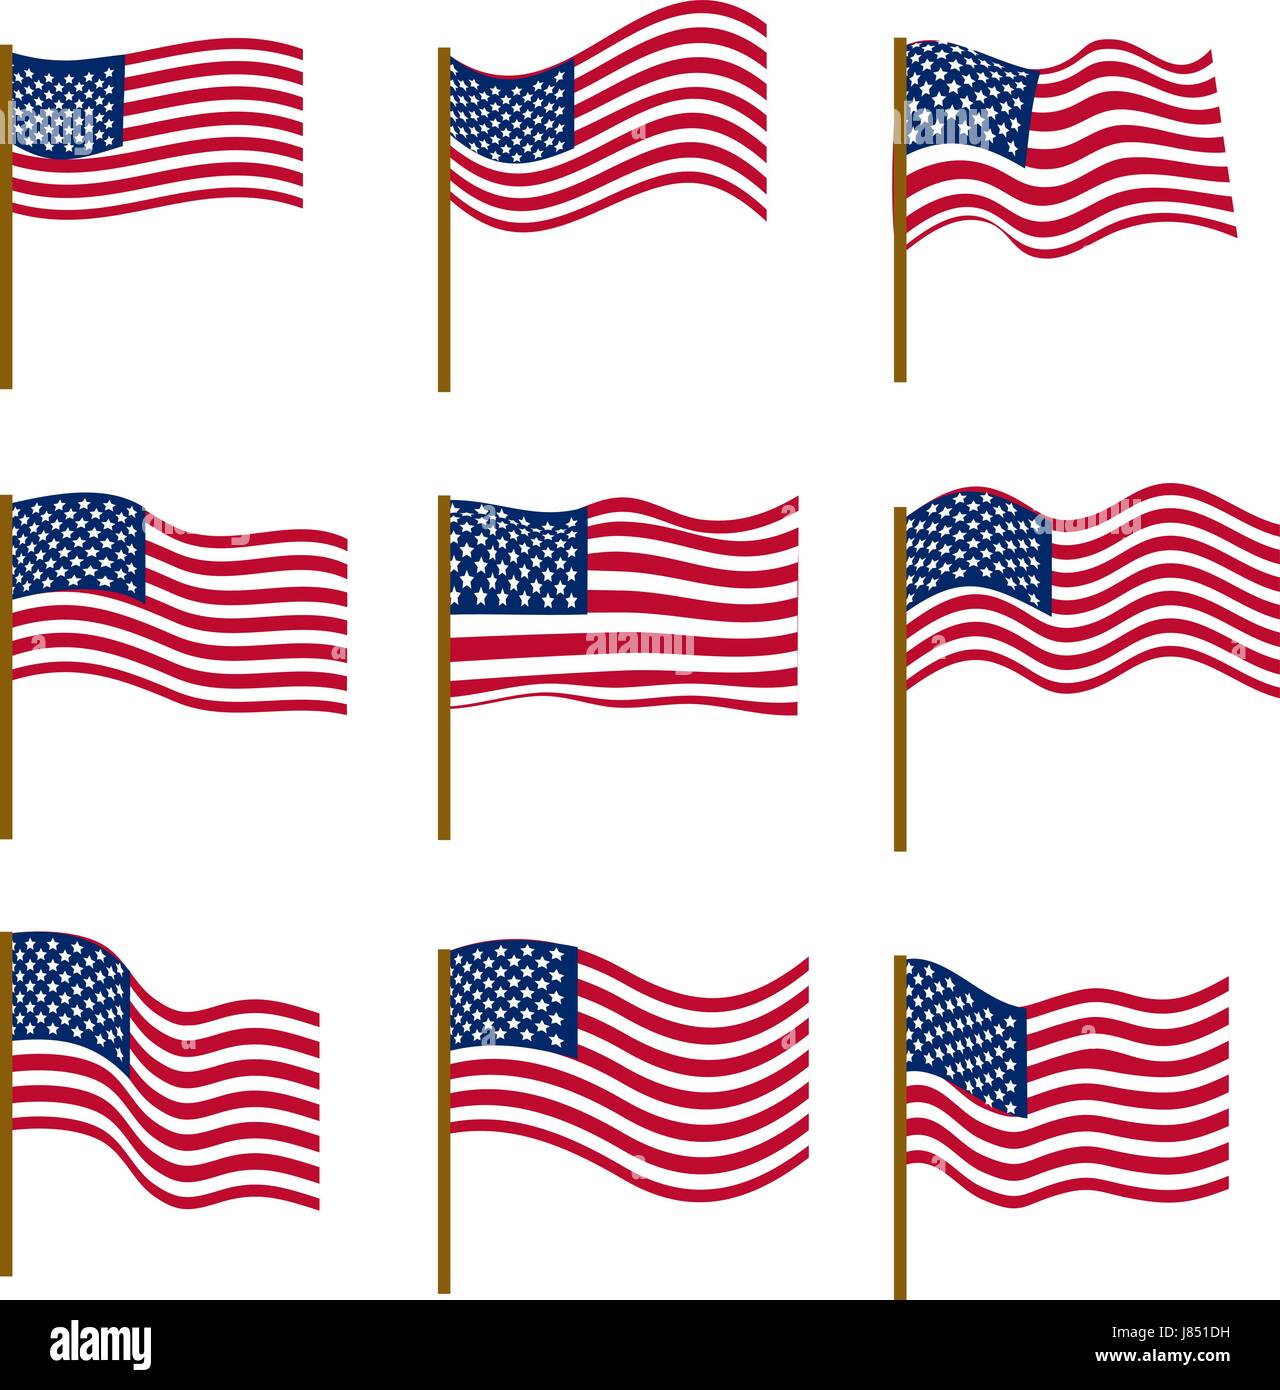 5b1942dab8e3 Set of flags of United States of America isolated on white background.  Independence Day